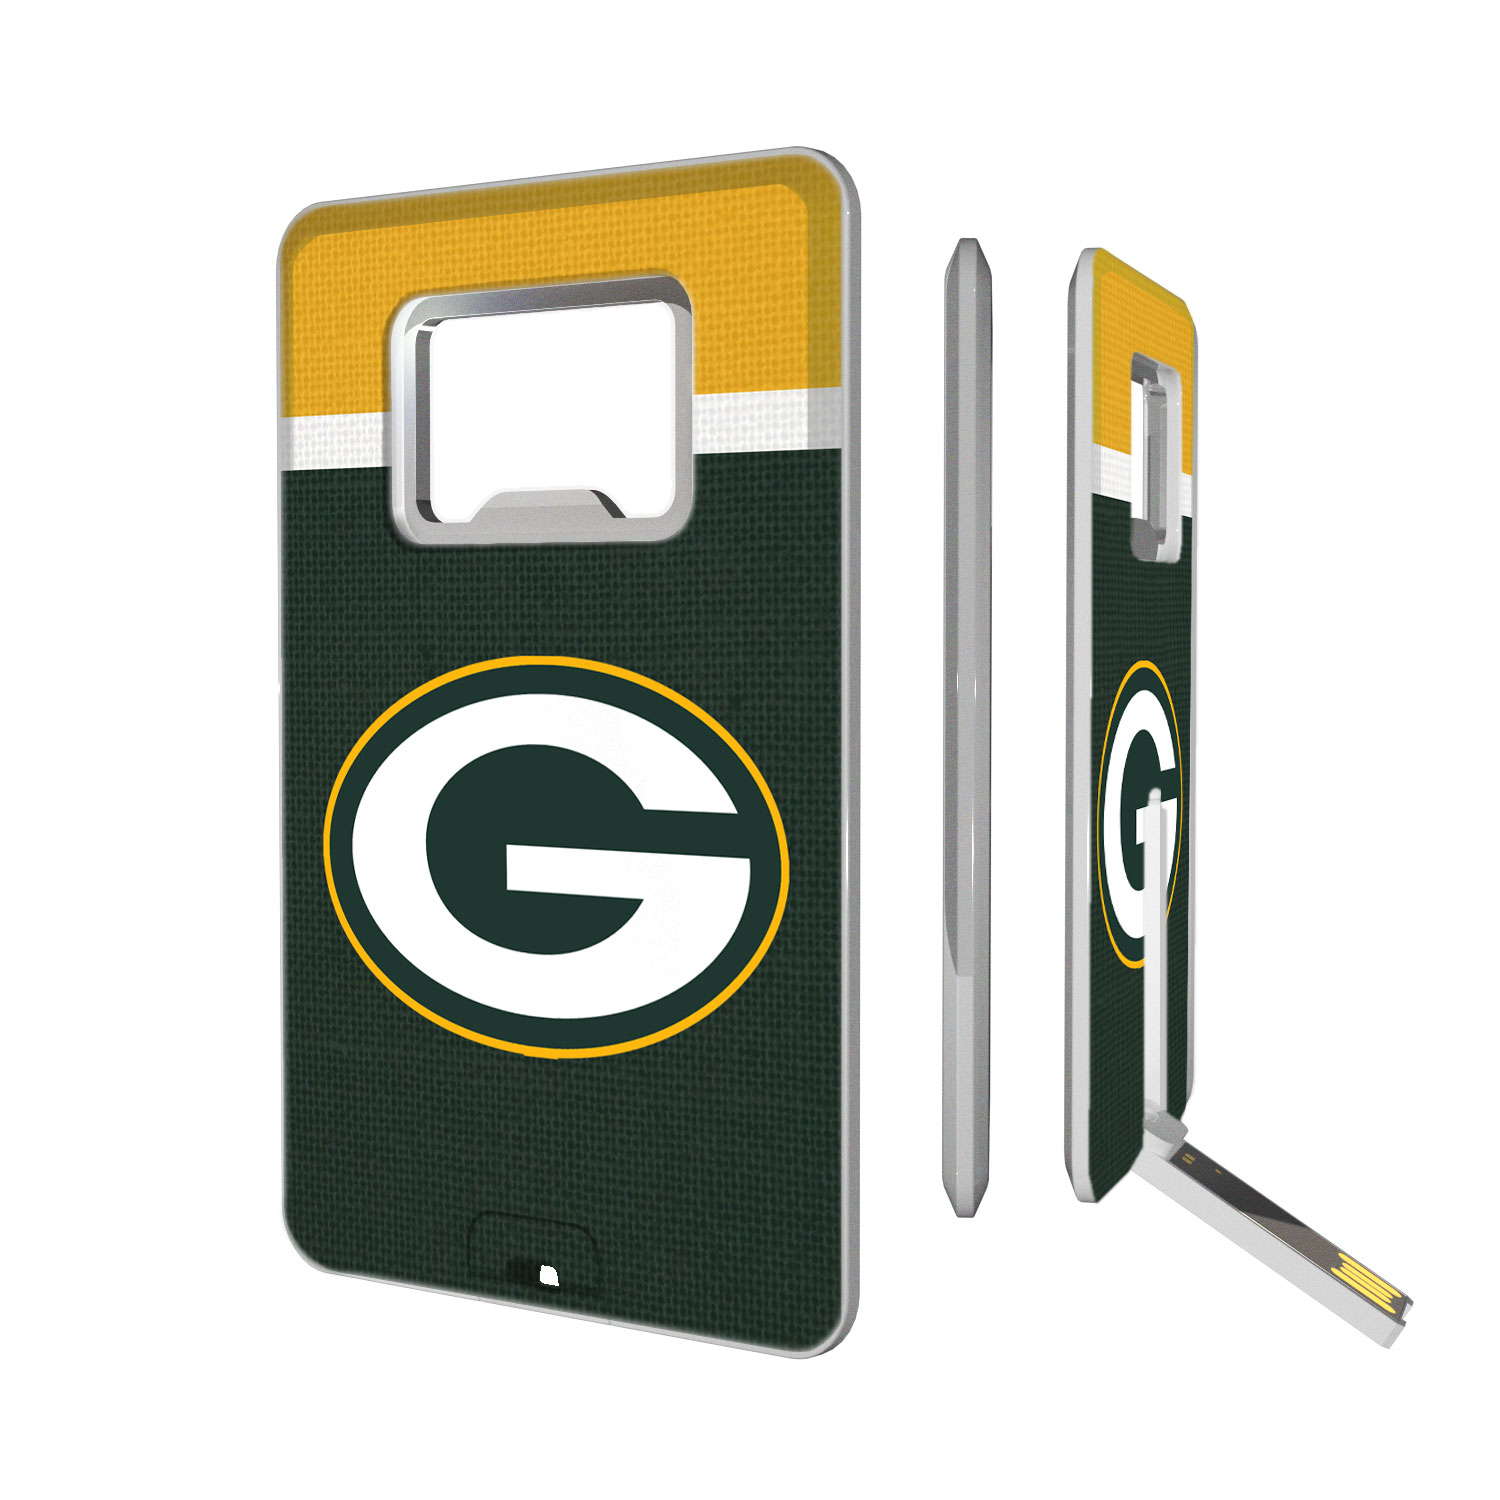 Green Bay Packers Striped Credit Card USB Drive & Bottle Opener